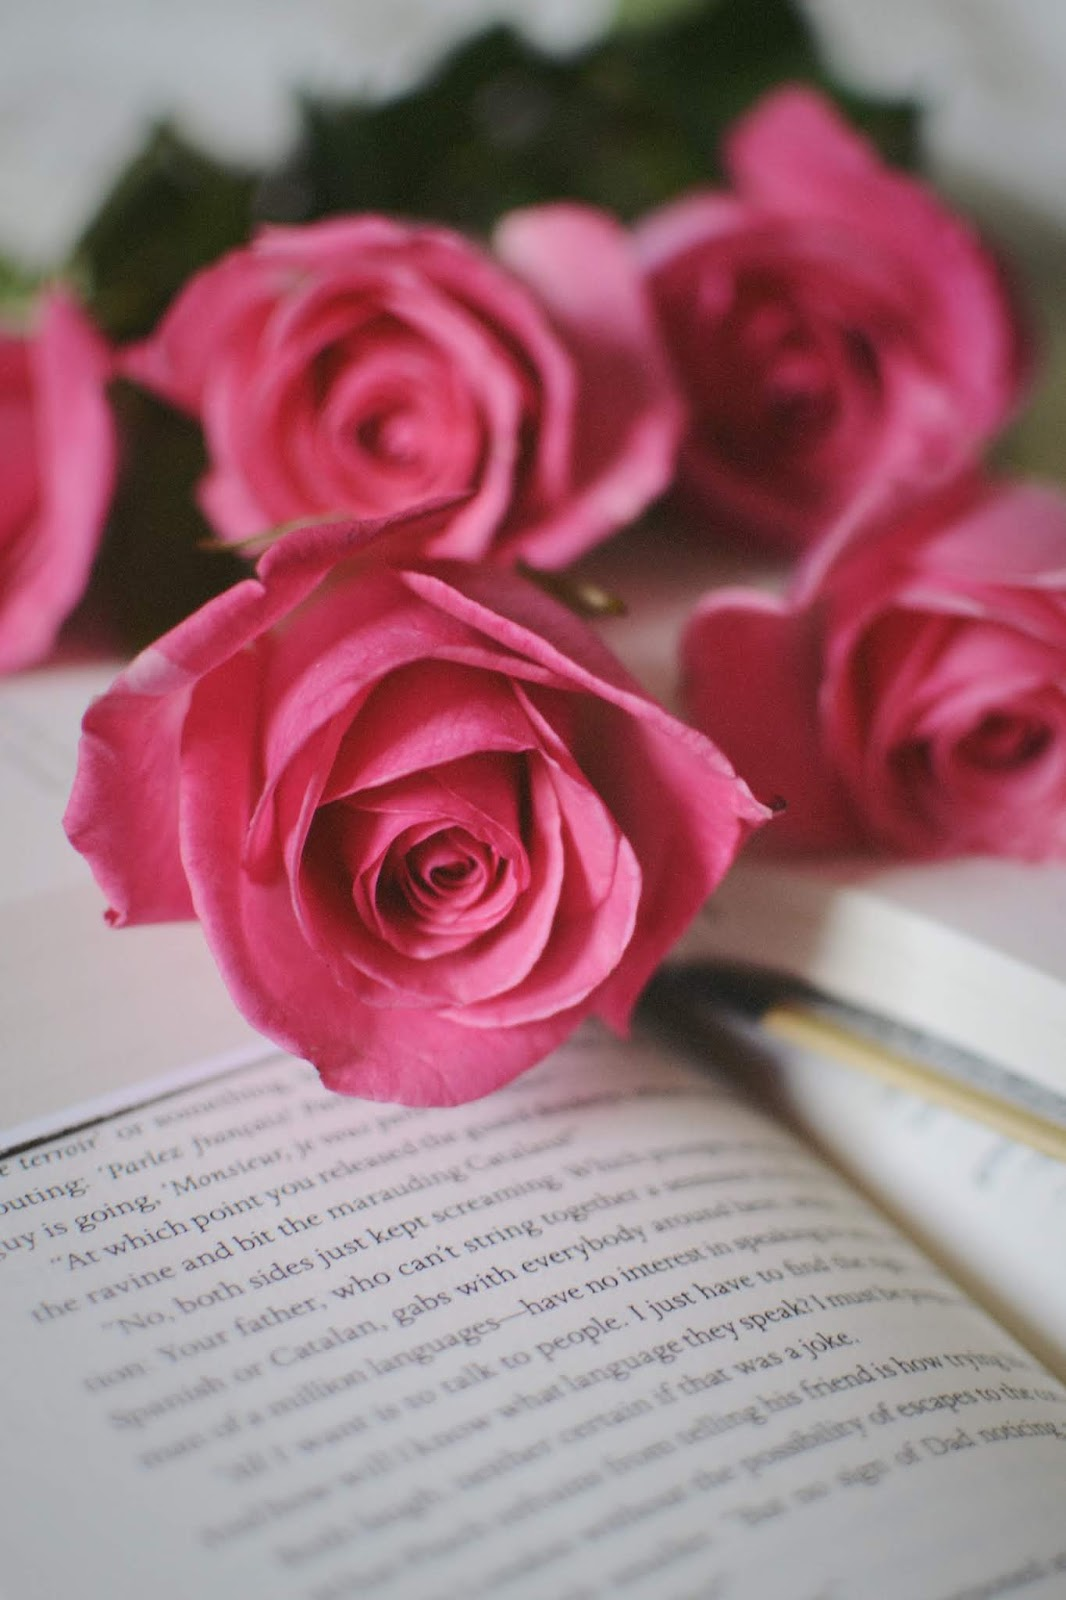 books and roses flower chapters indigo aleesha harris